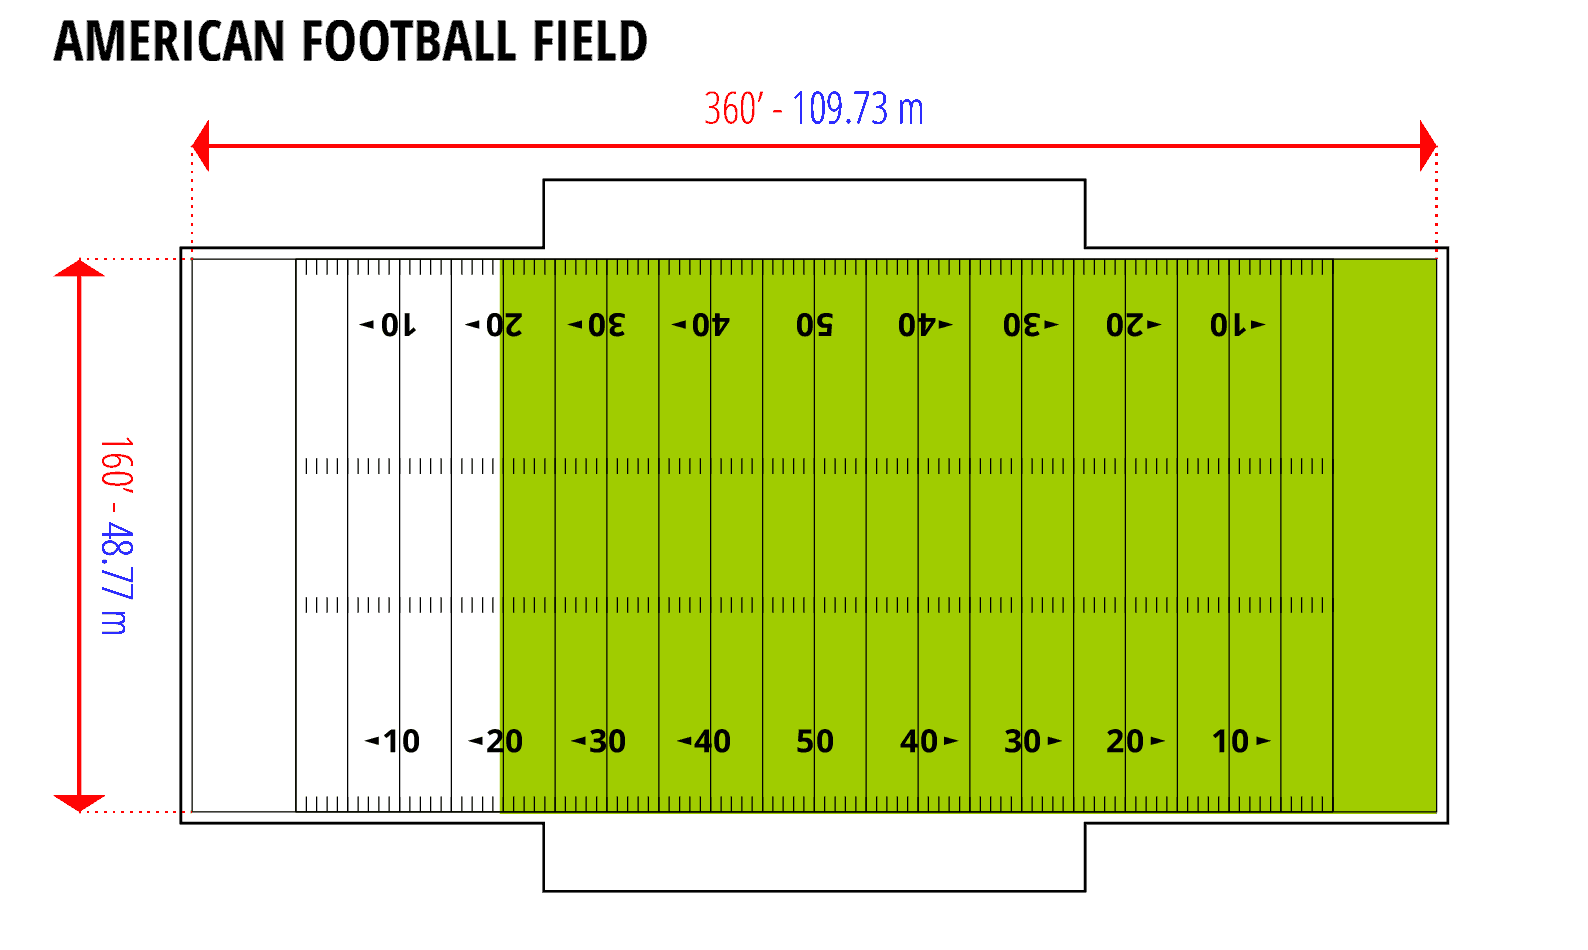 Visual comparison: one U.S. acre to an American football field